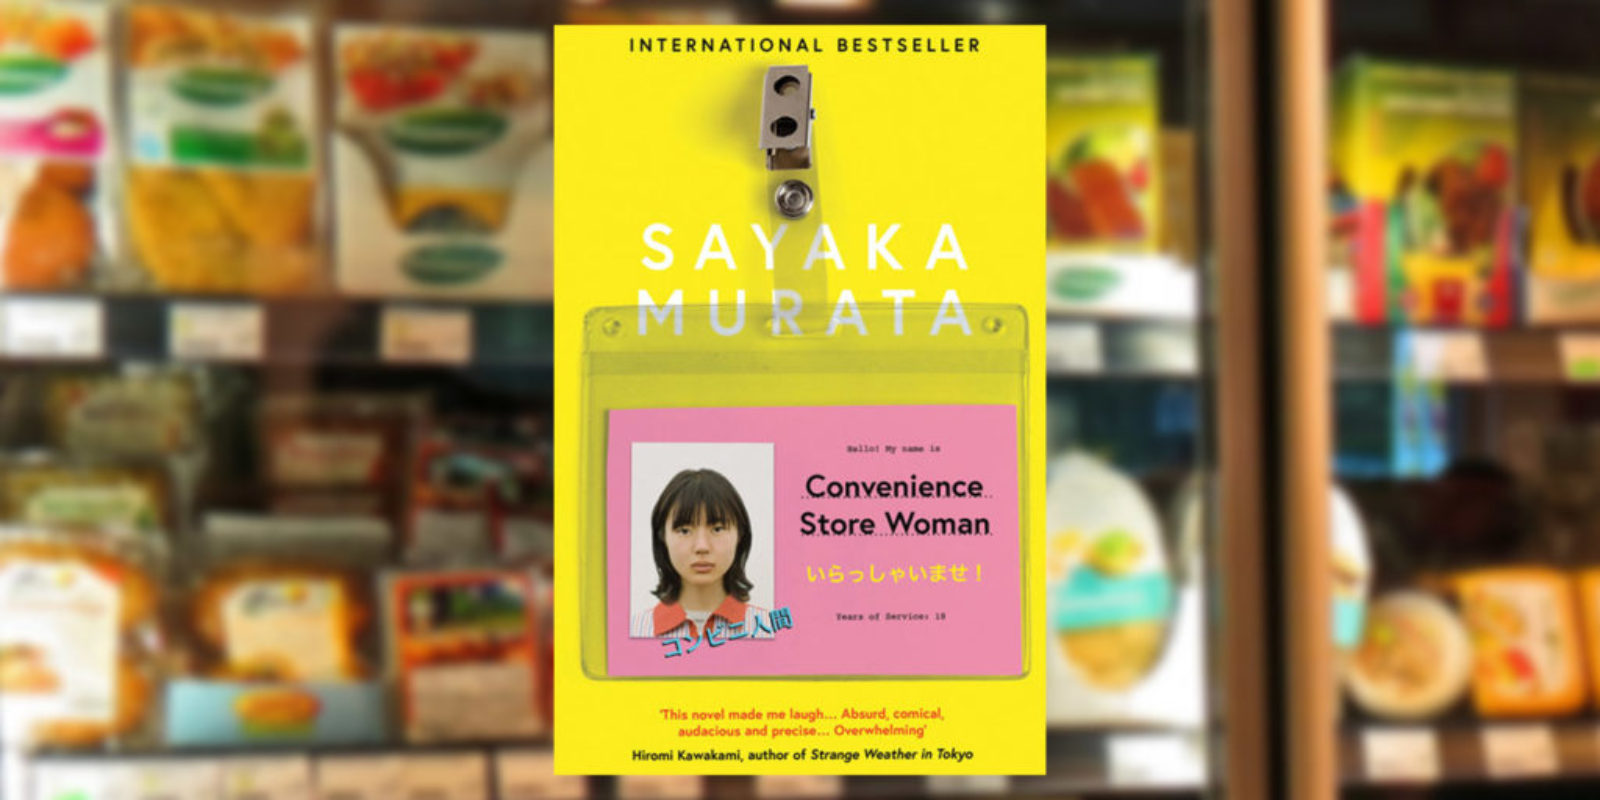 Convenience-Store-Woman-by-Sayaka-Murata-Header